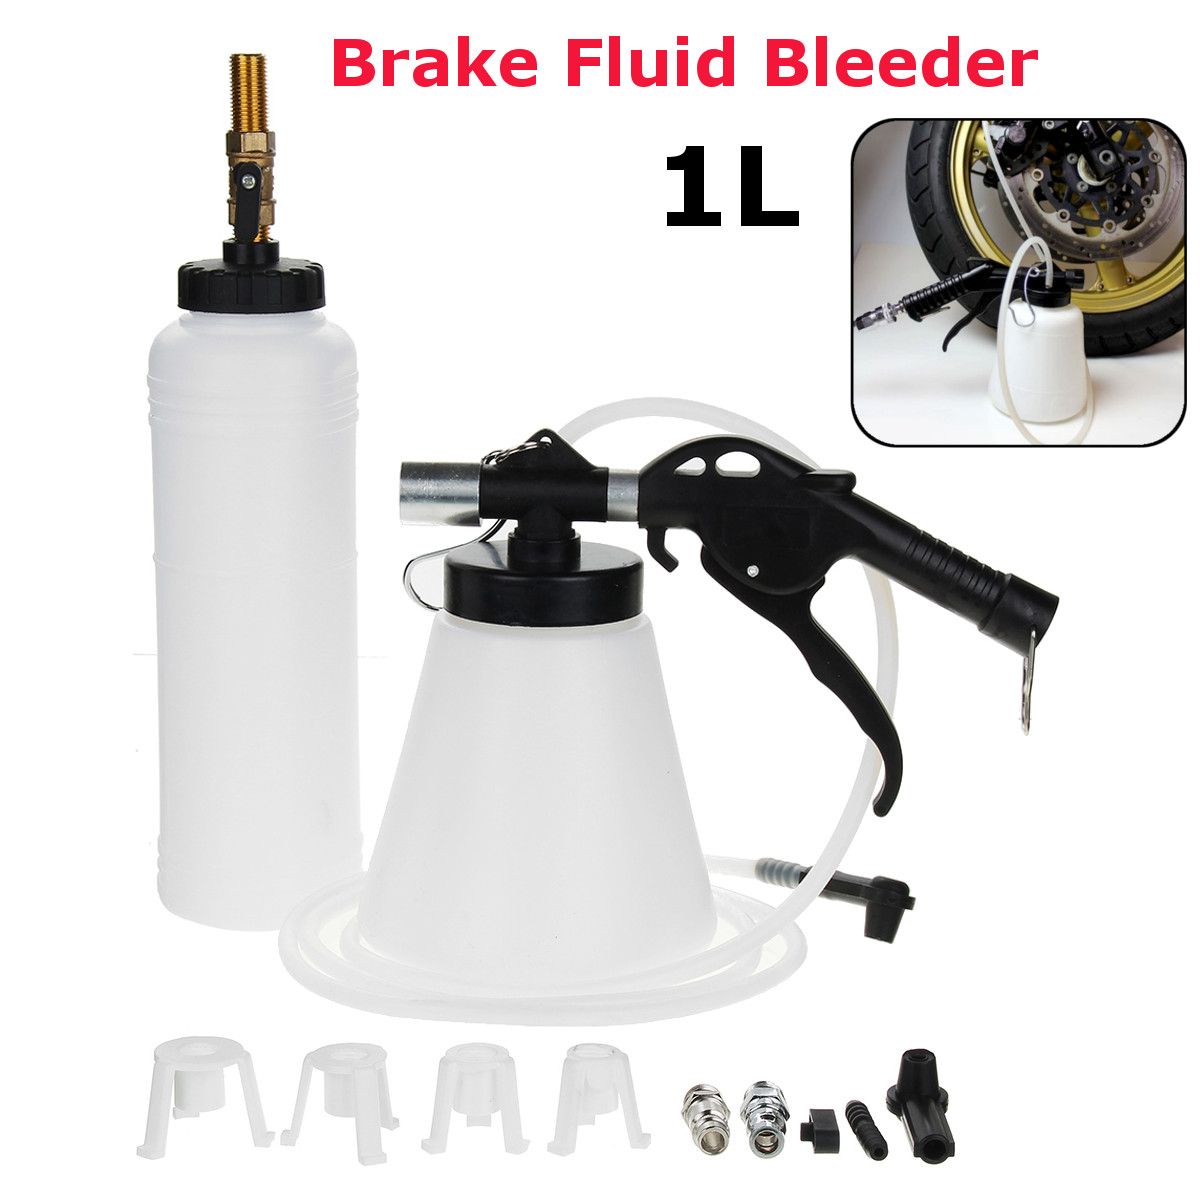 1l Air Brake Fluid Bleeder Kit Clutch Bleeding Extractor Fill Bottle 4 Adapters Fit For Most Vehicle Clean And Efficient Sales Of Quality Assurance Tire Accessories